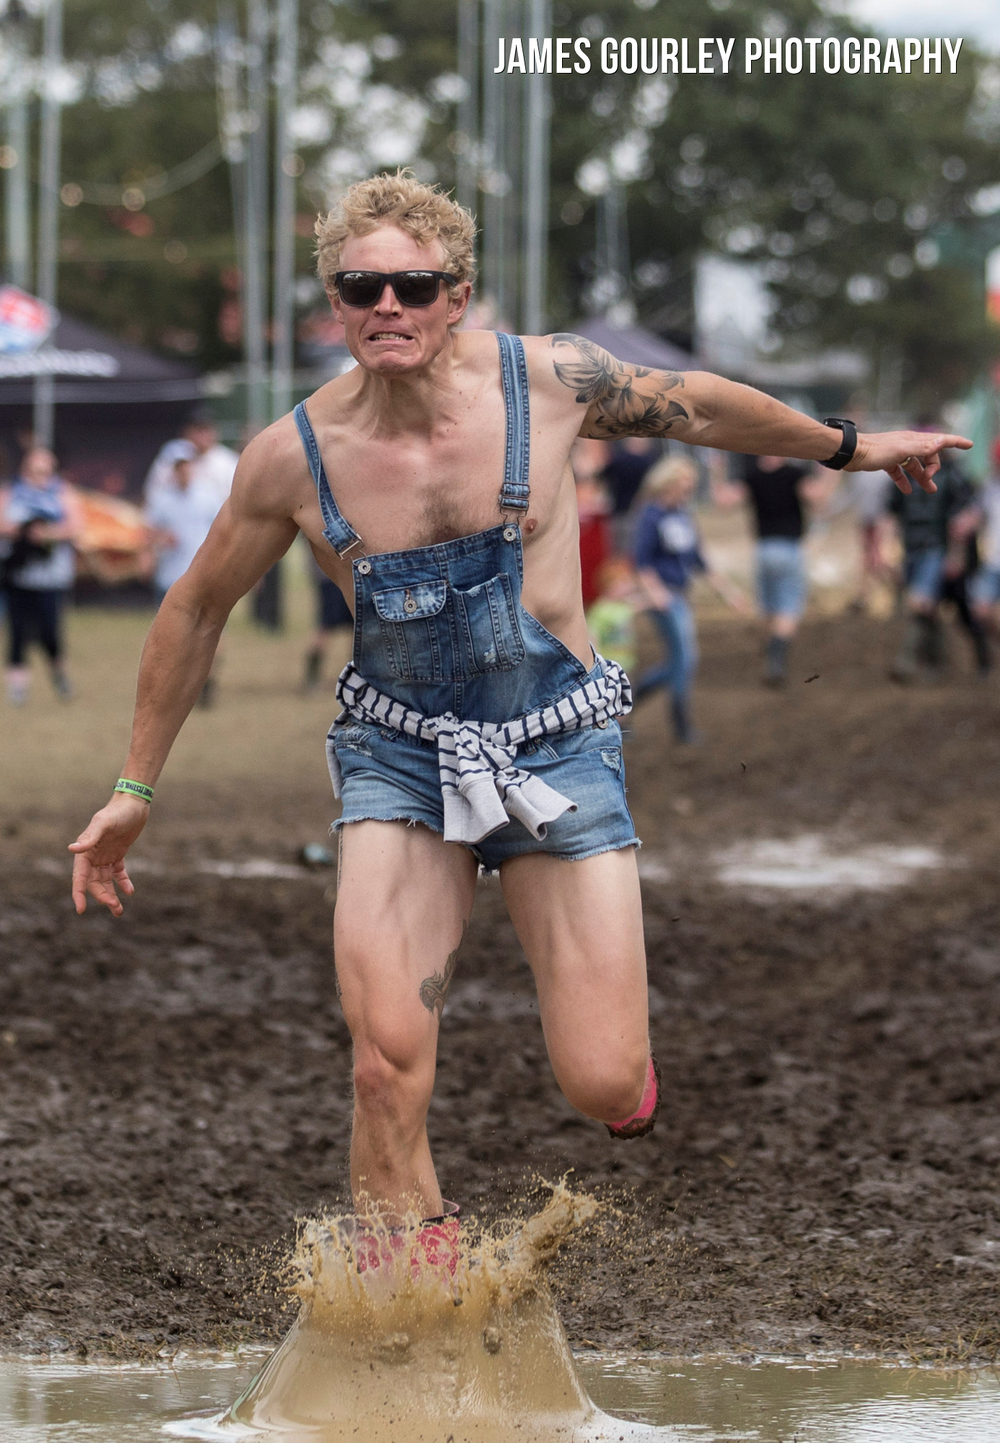 Festival goers struggle with muddy ground after heavy rain at the Isle of Wight Festival 2015